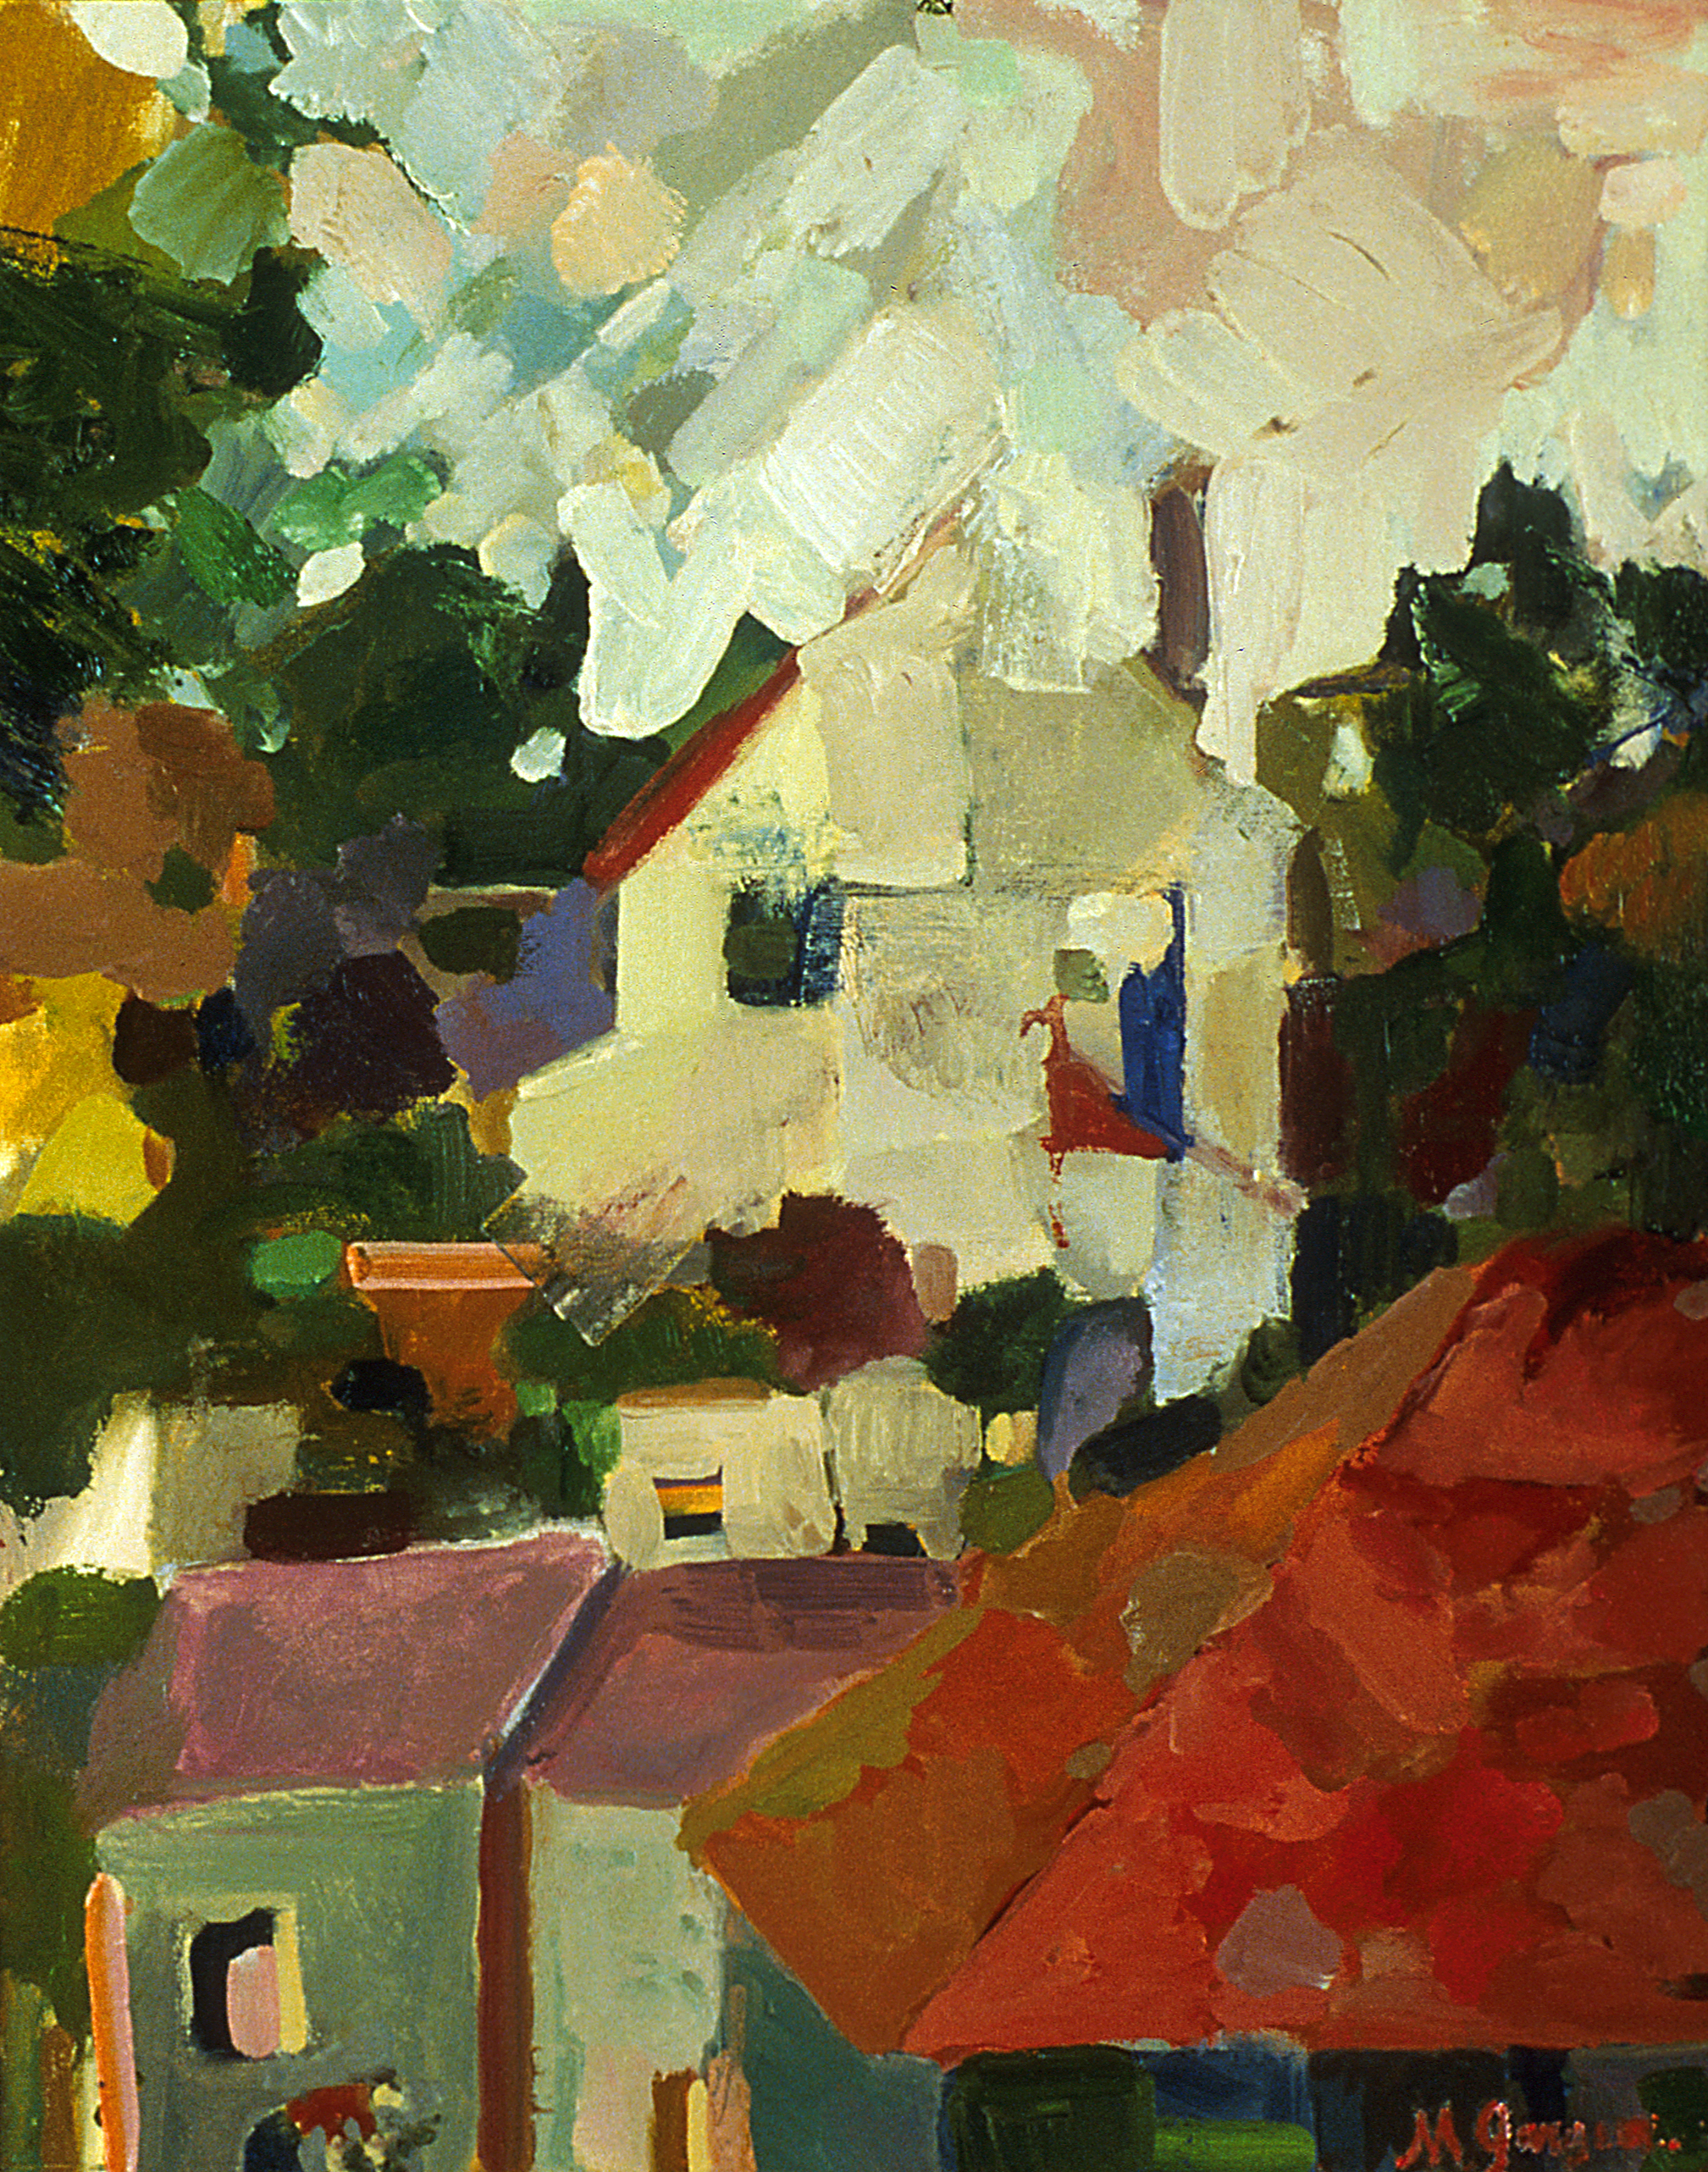 Berkley Bungalow  26 x 30 inches Oil on Canvas 2014